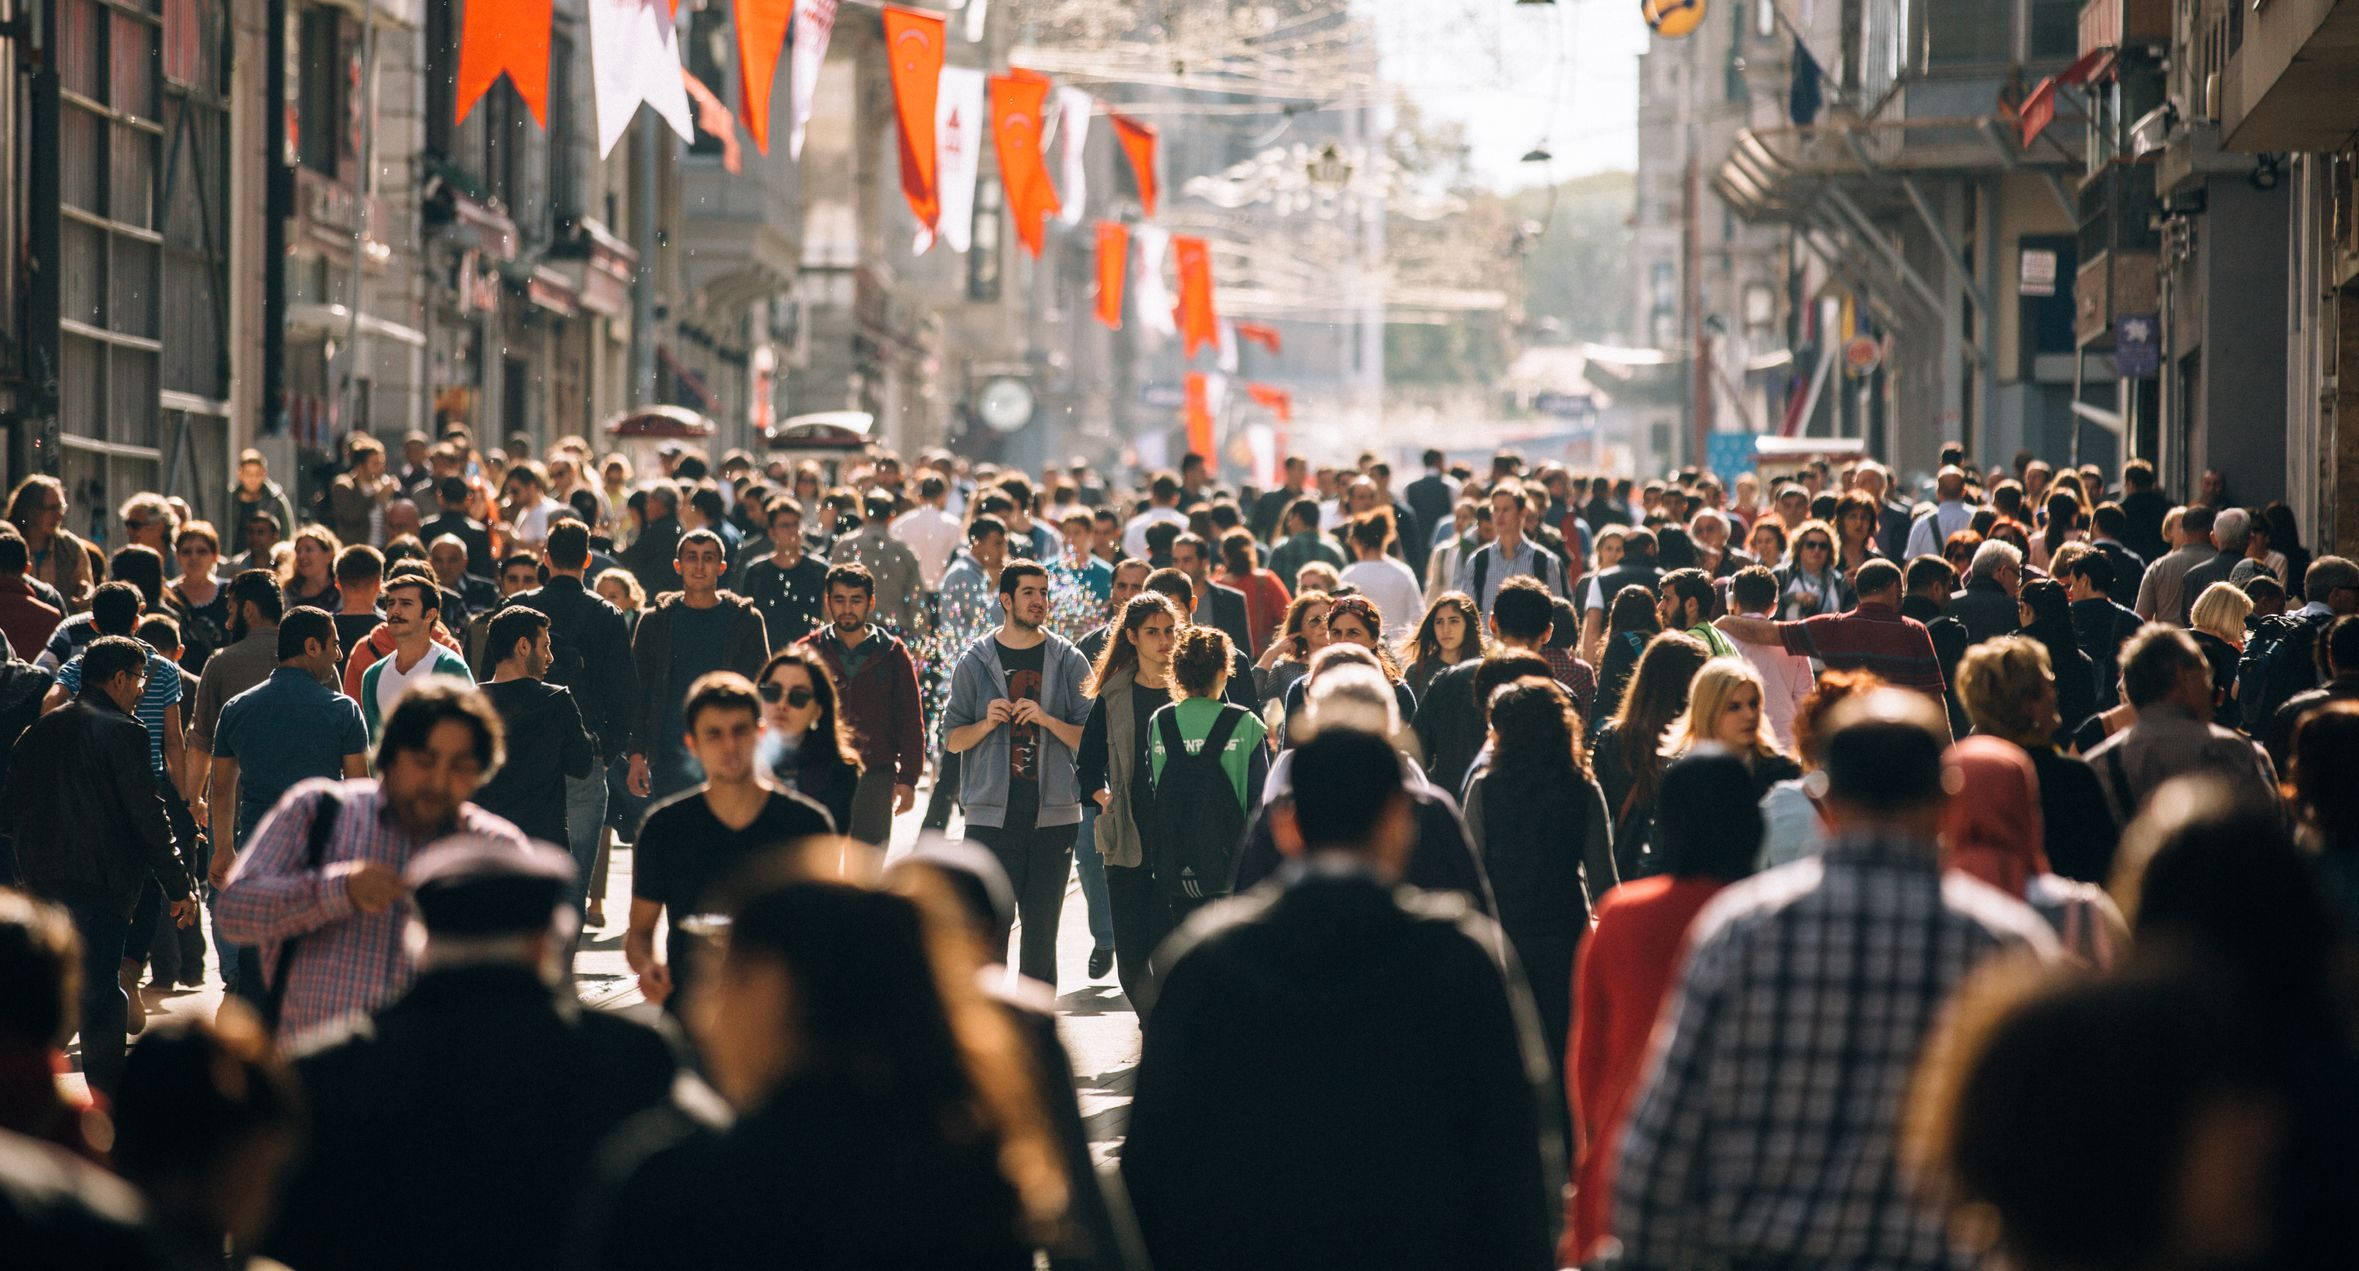 Understanding the Fear of Crowds